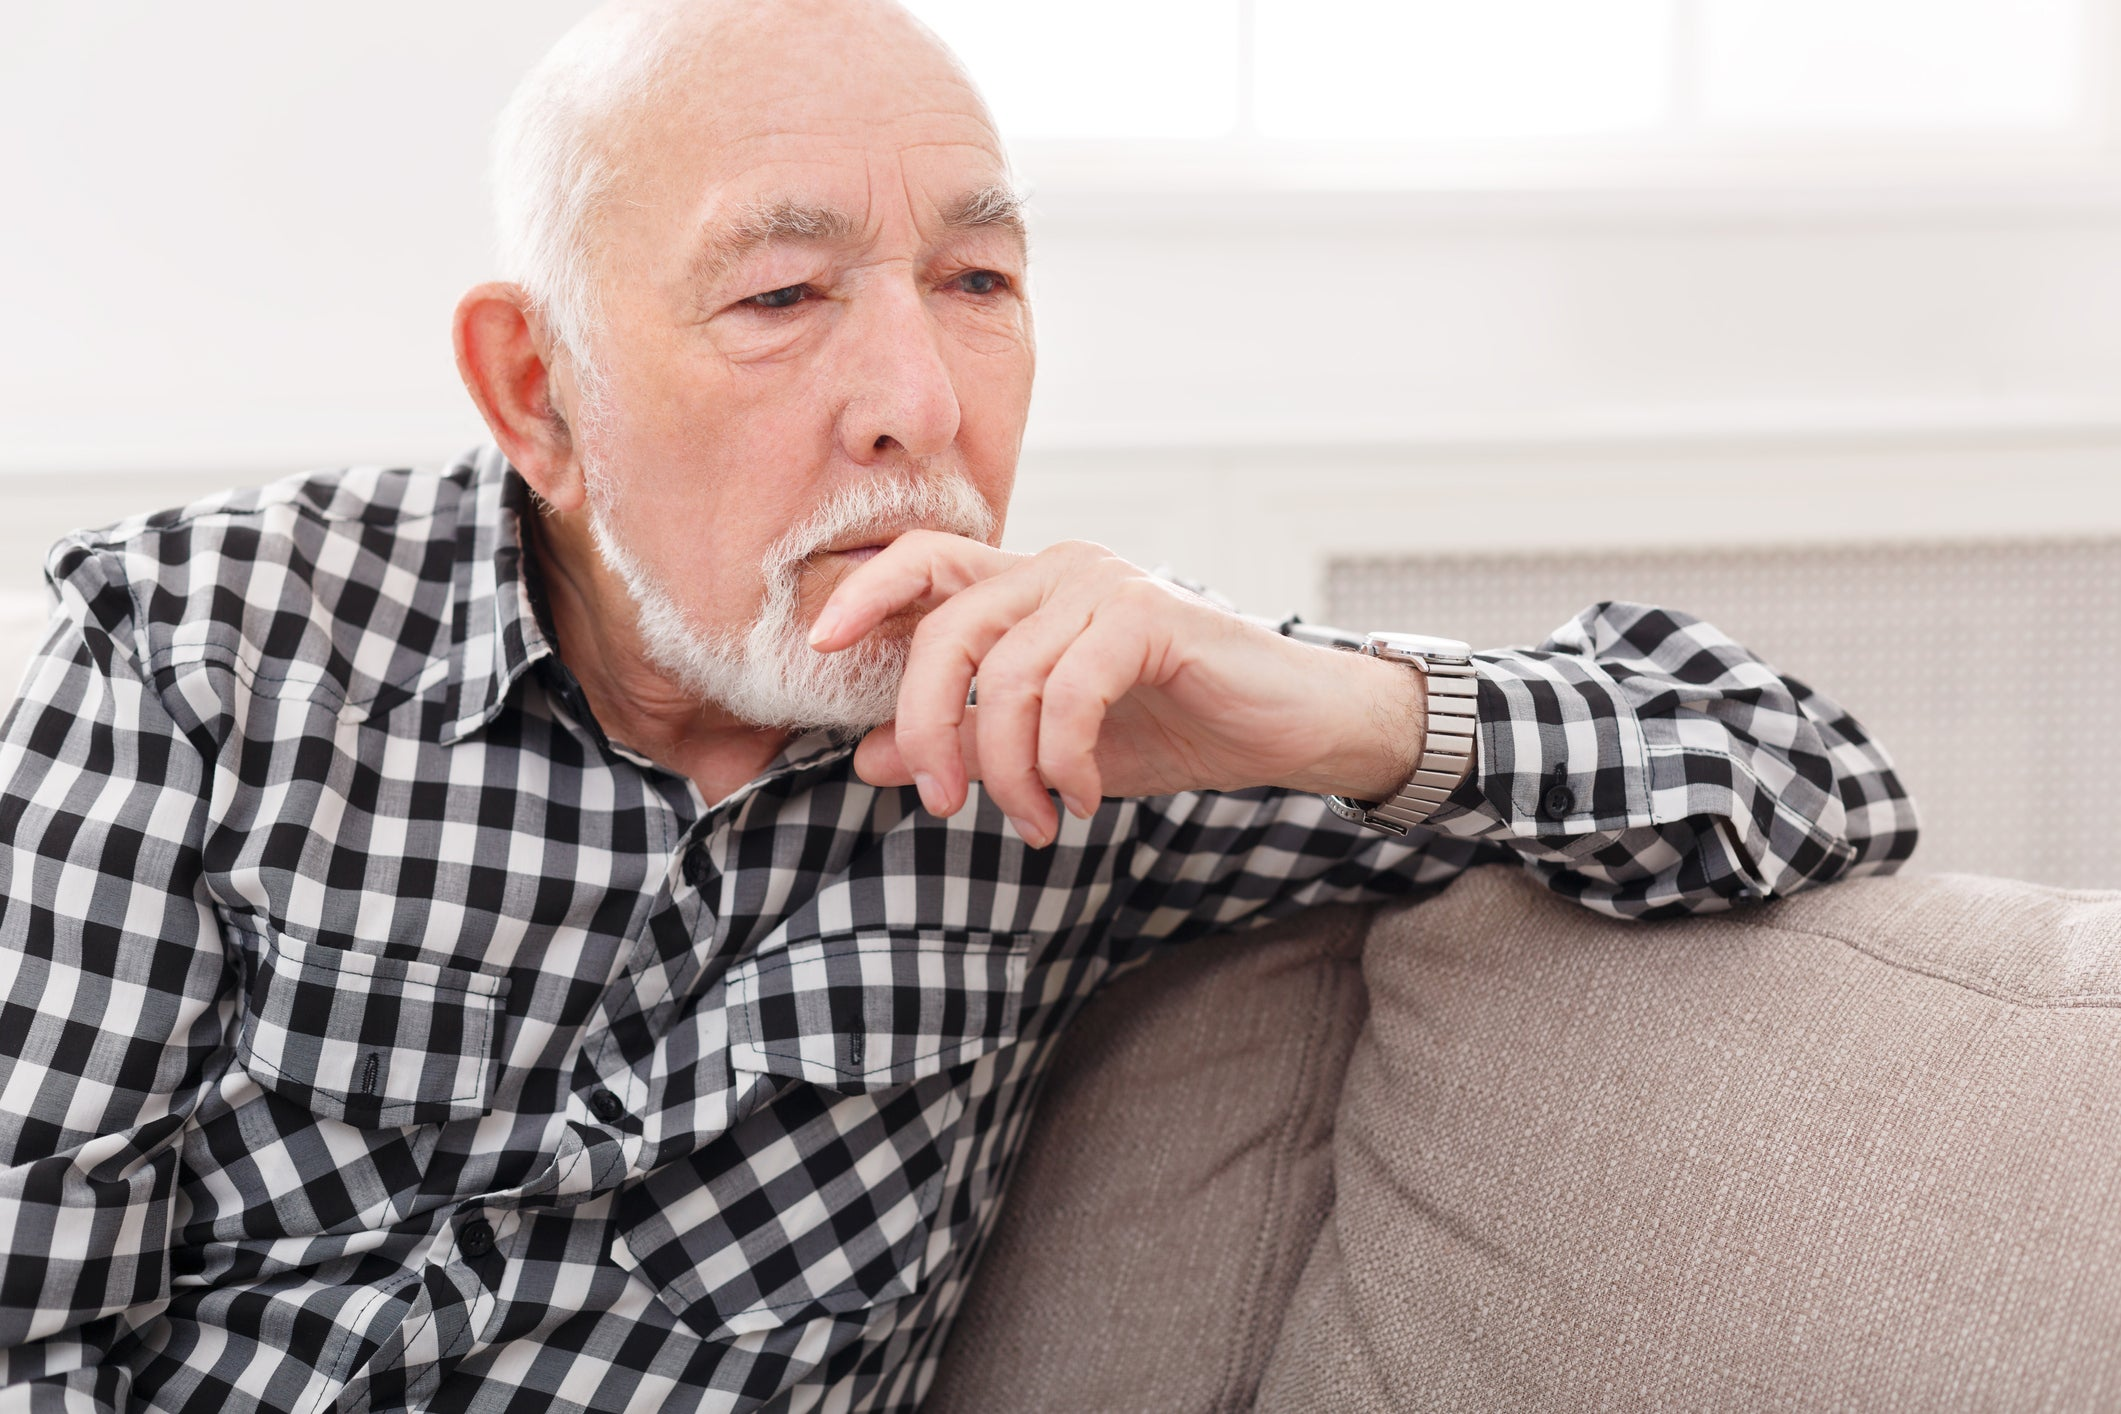 Older man sitting on couch, with hand resting on chin as if deep in thought.